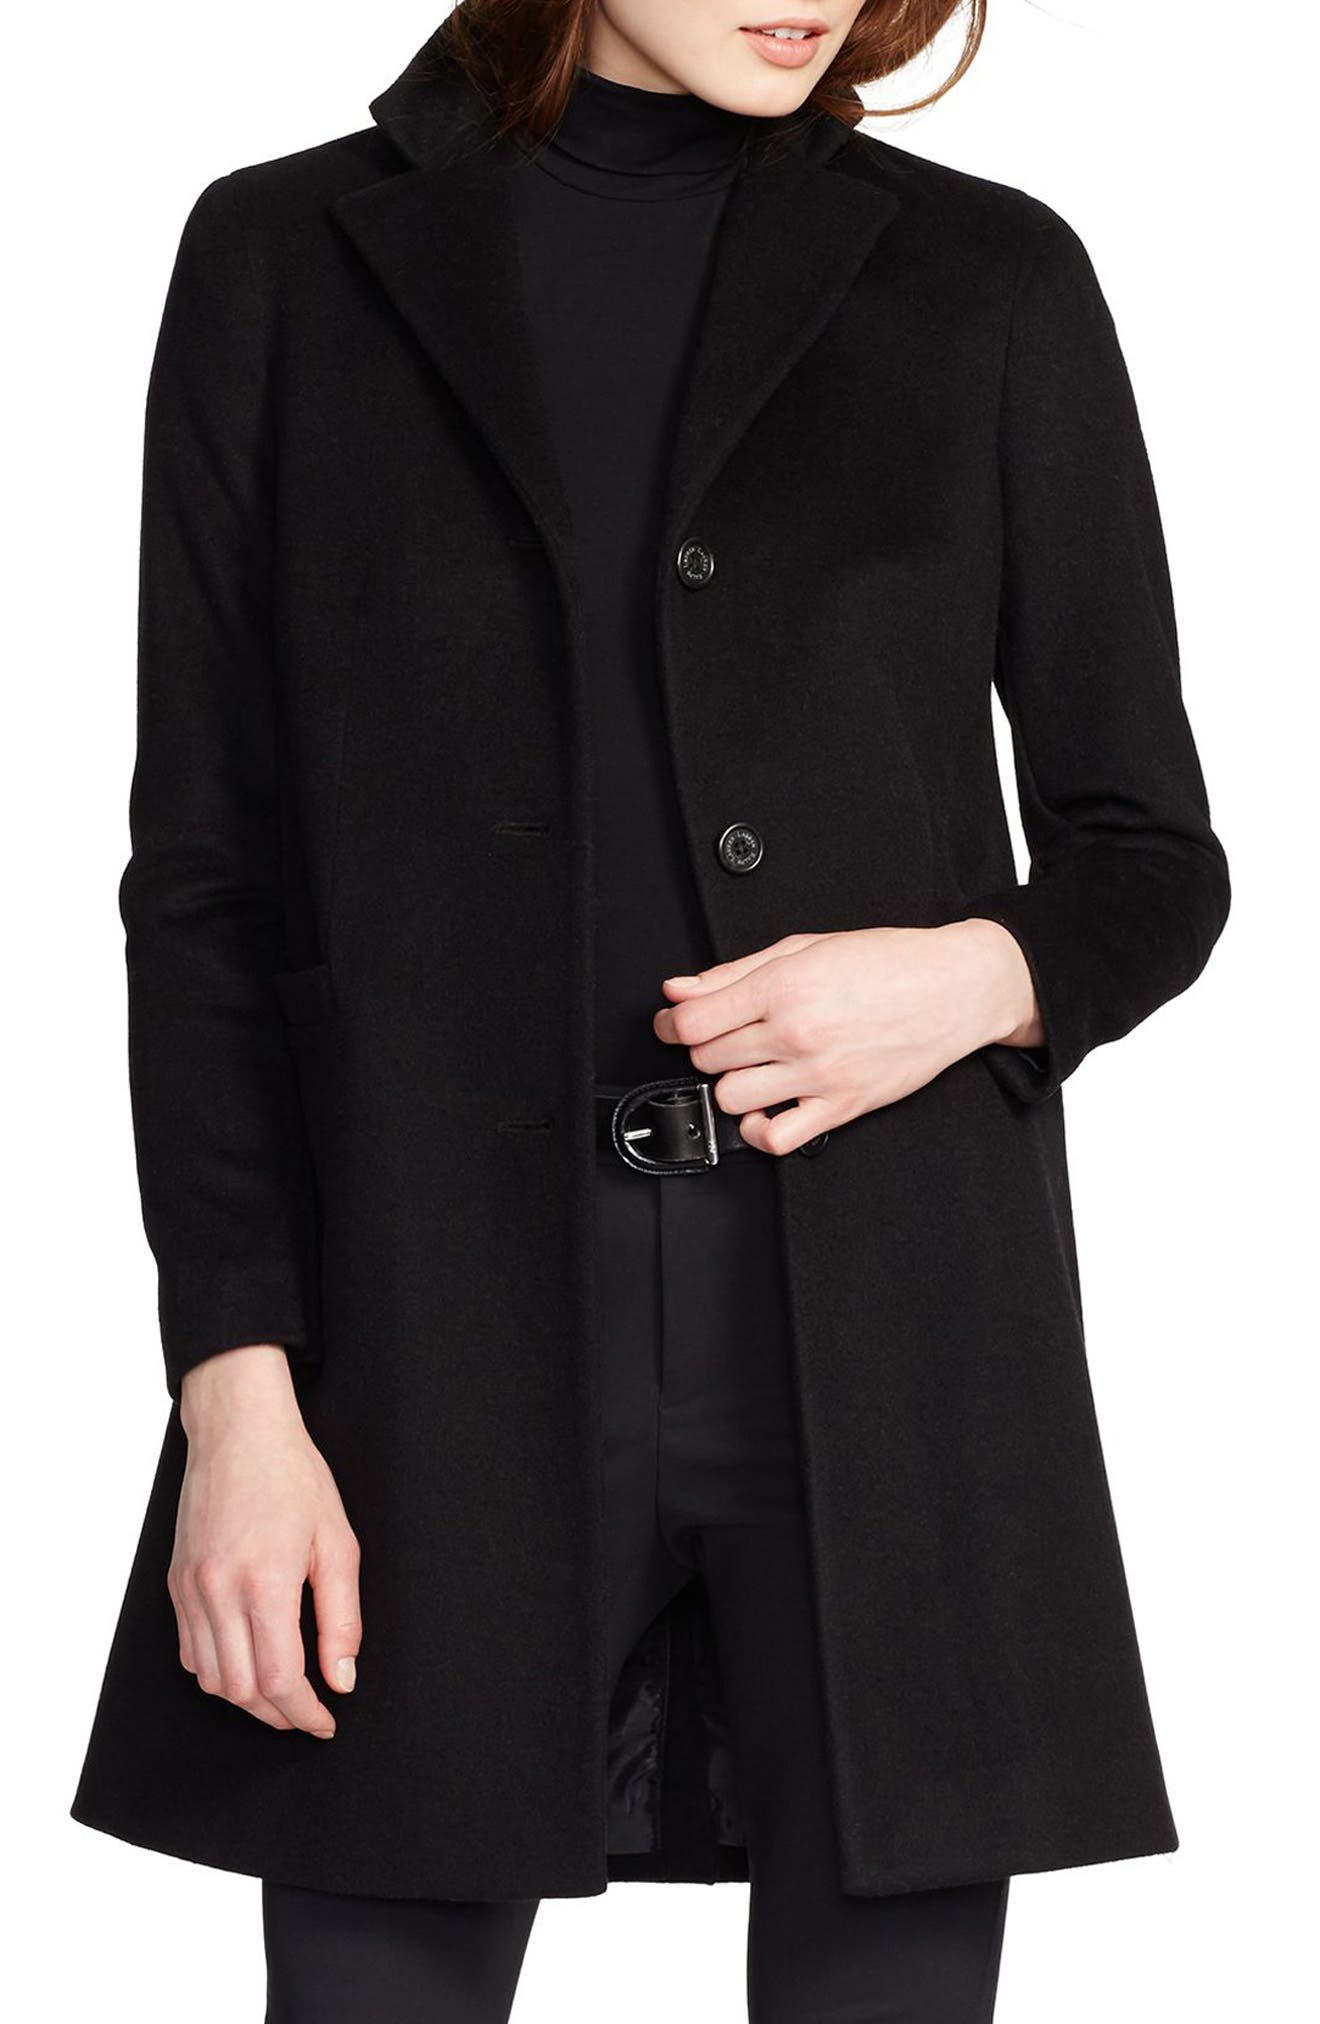 LAUREN RALPH LAUREN,                             Wool Blend Reefer Coat,                             Main thumbnail 1, color,                             BLACK